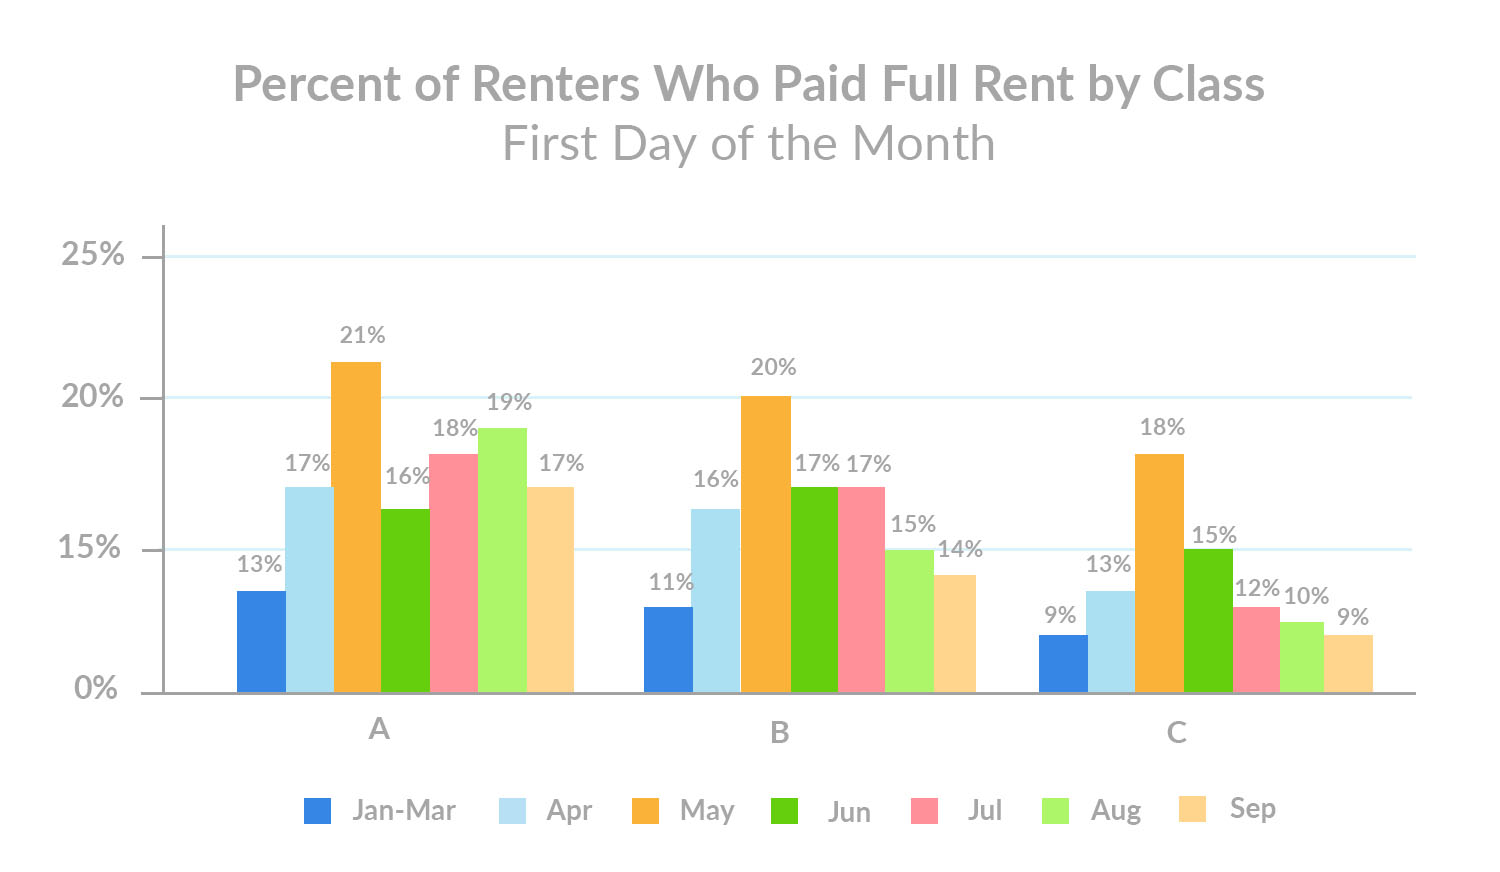 Percent of Renters Who Paid Full Rent by Class September 1st Rent Payments